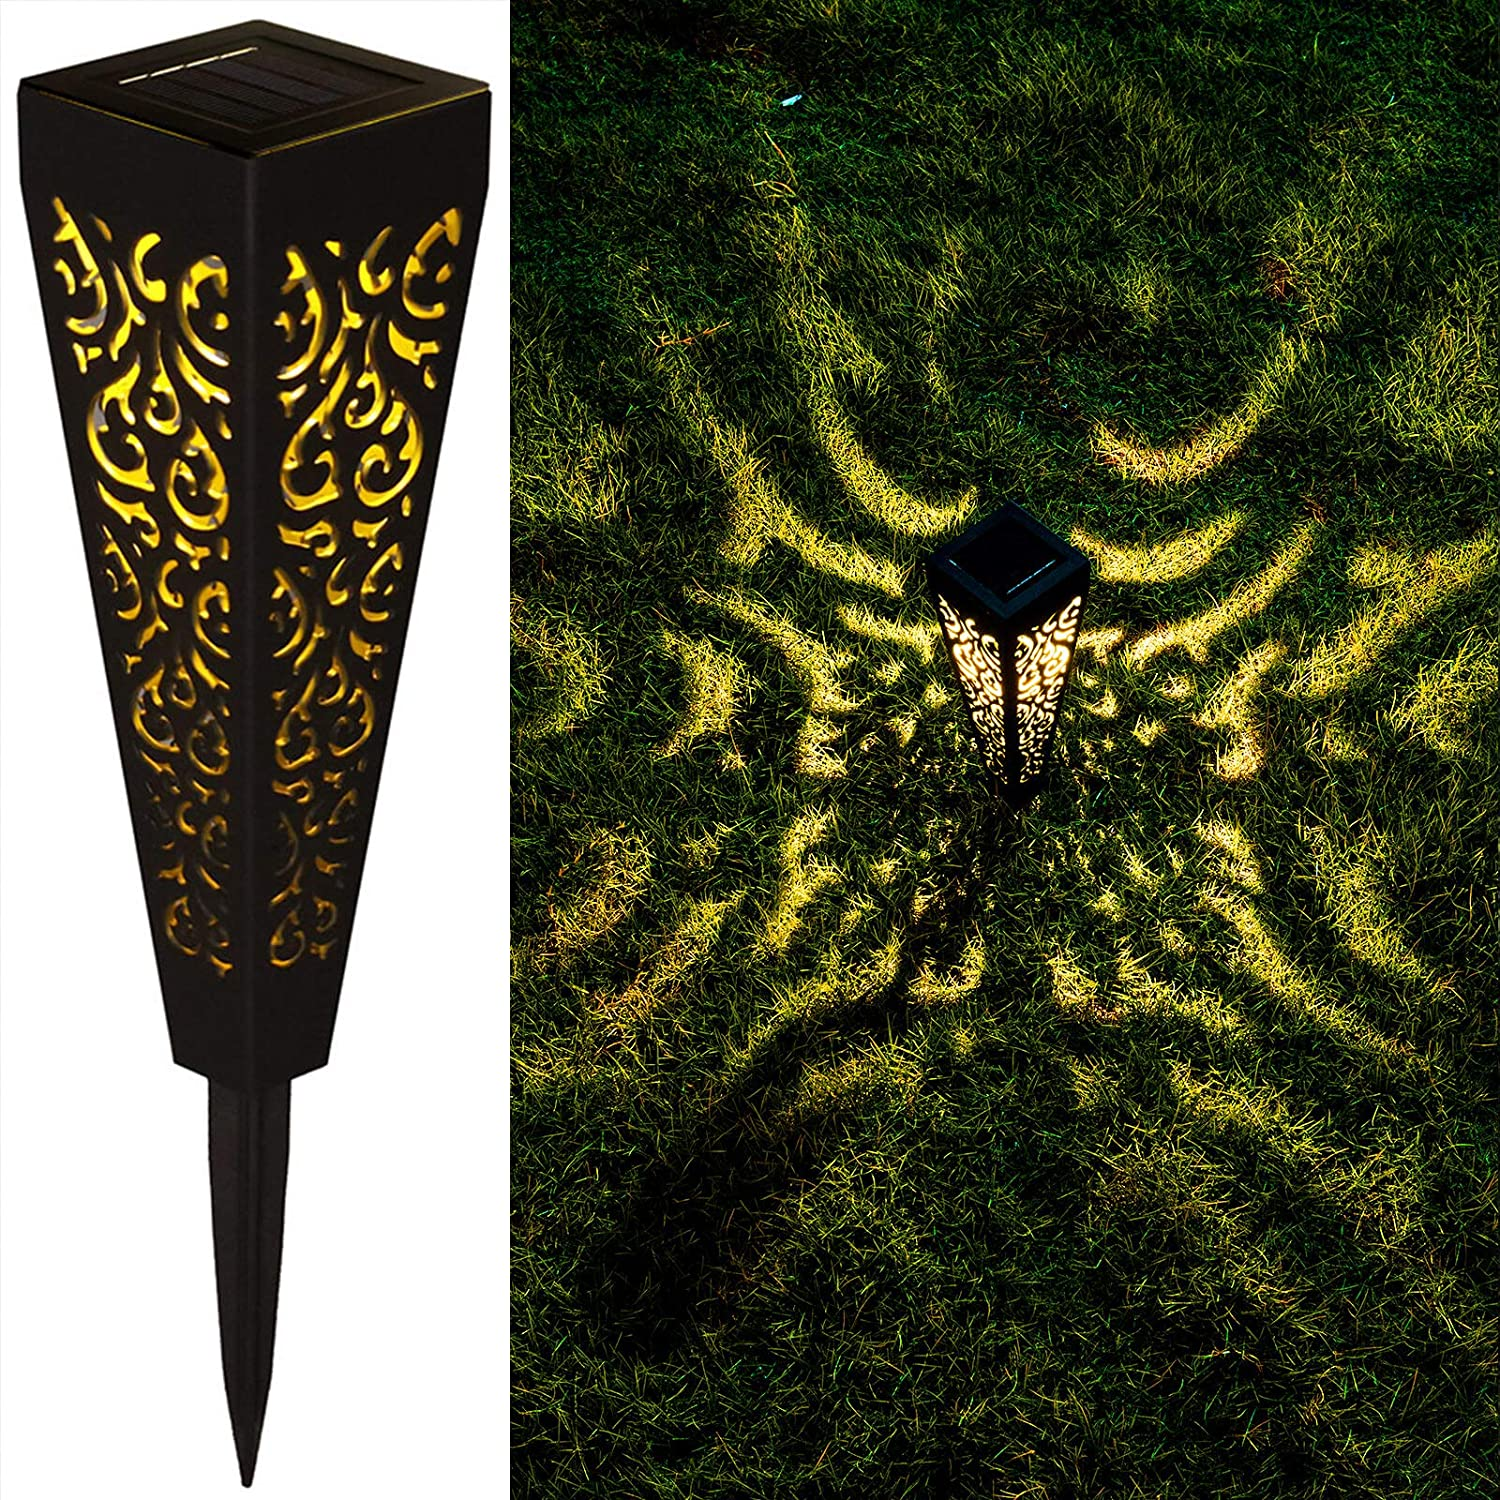 Details about  /LED Solar Pathway Landscape Garden Fence Lawn GroundFloorWall Lamp Light NEW